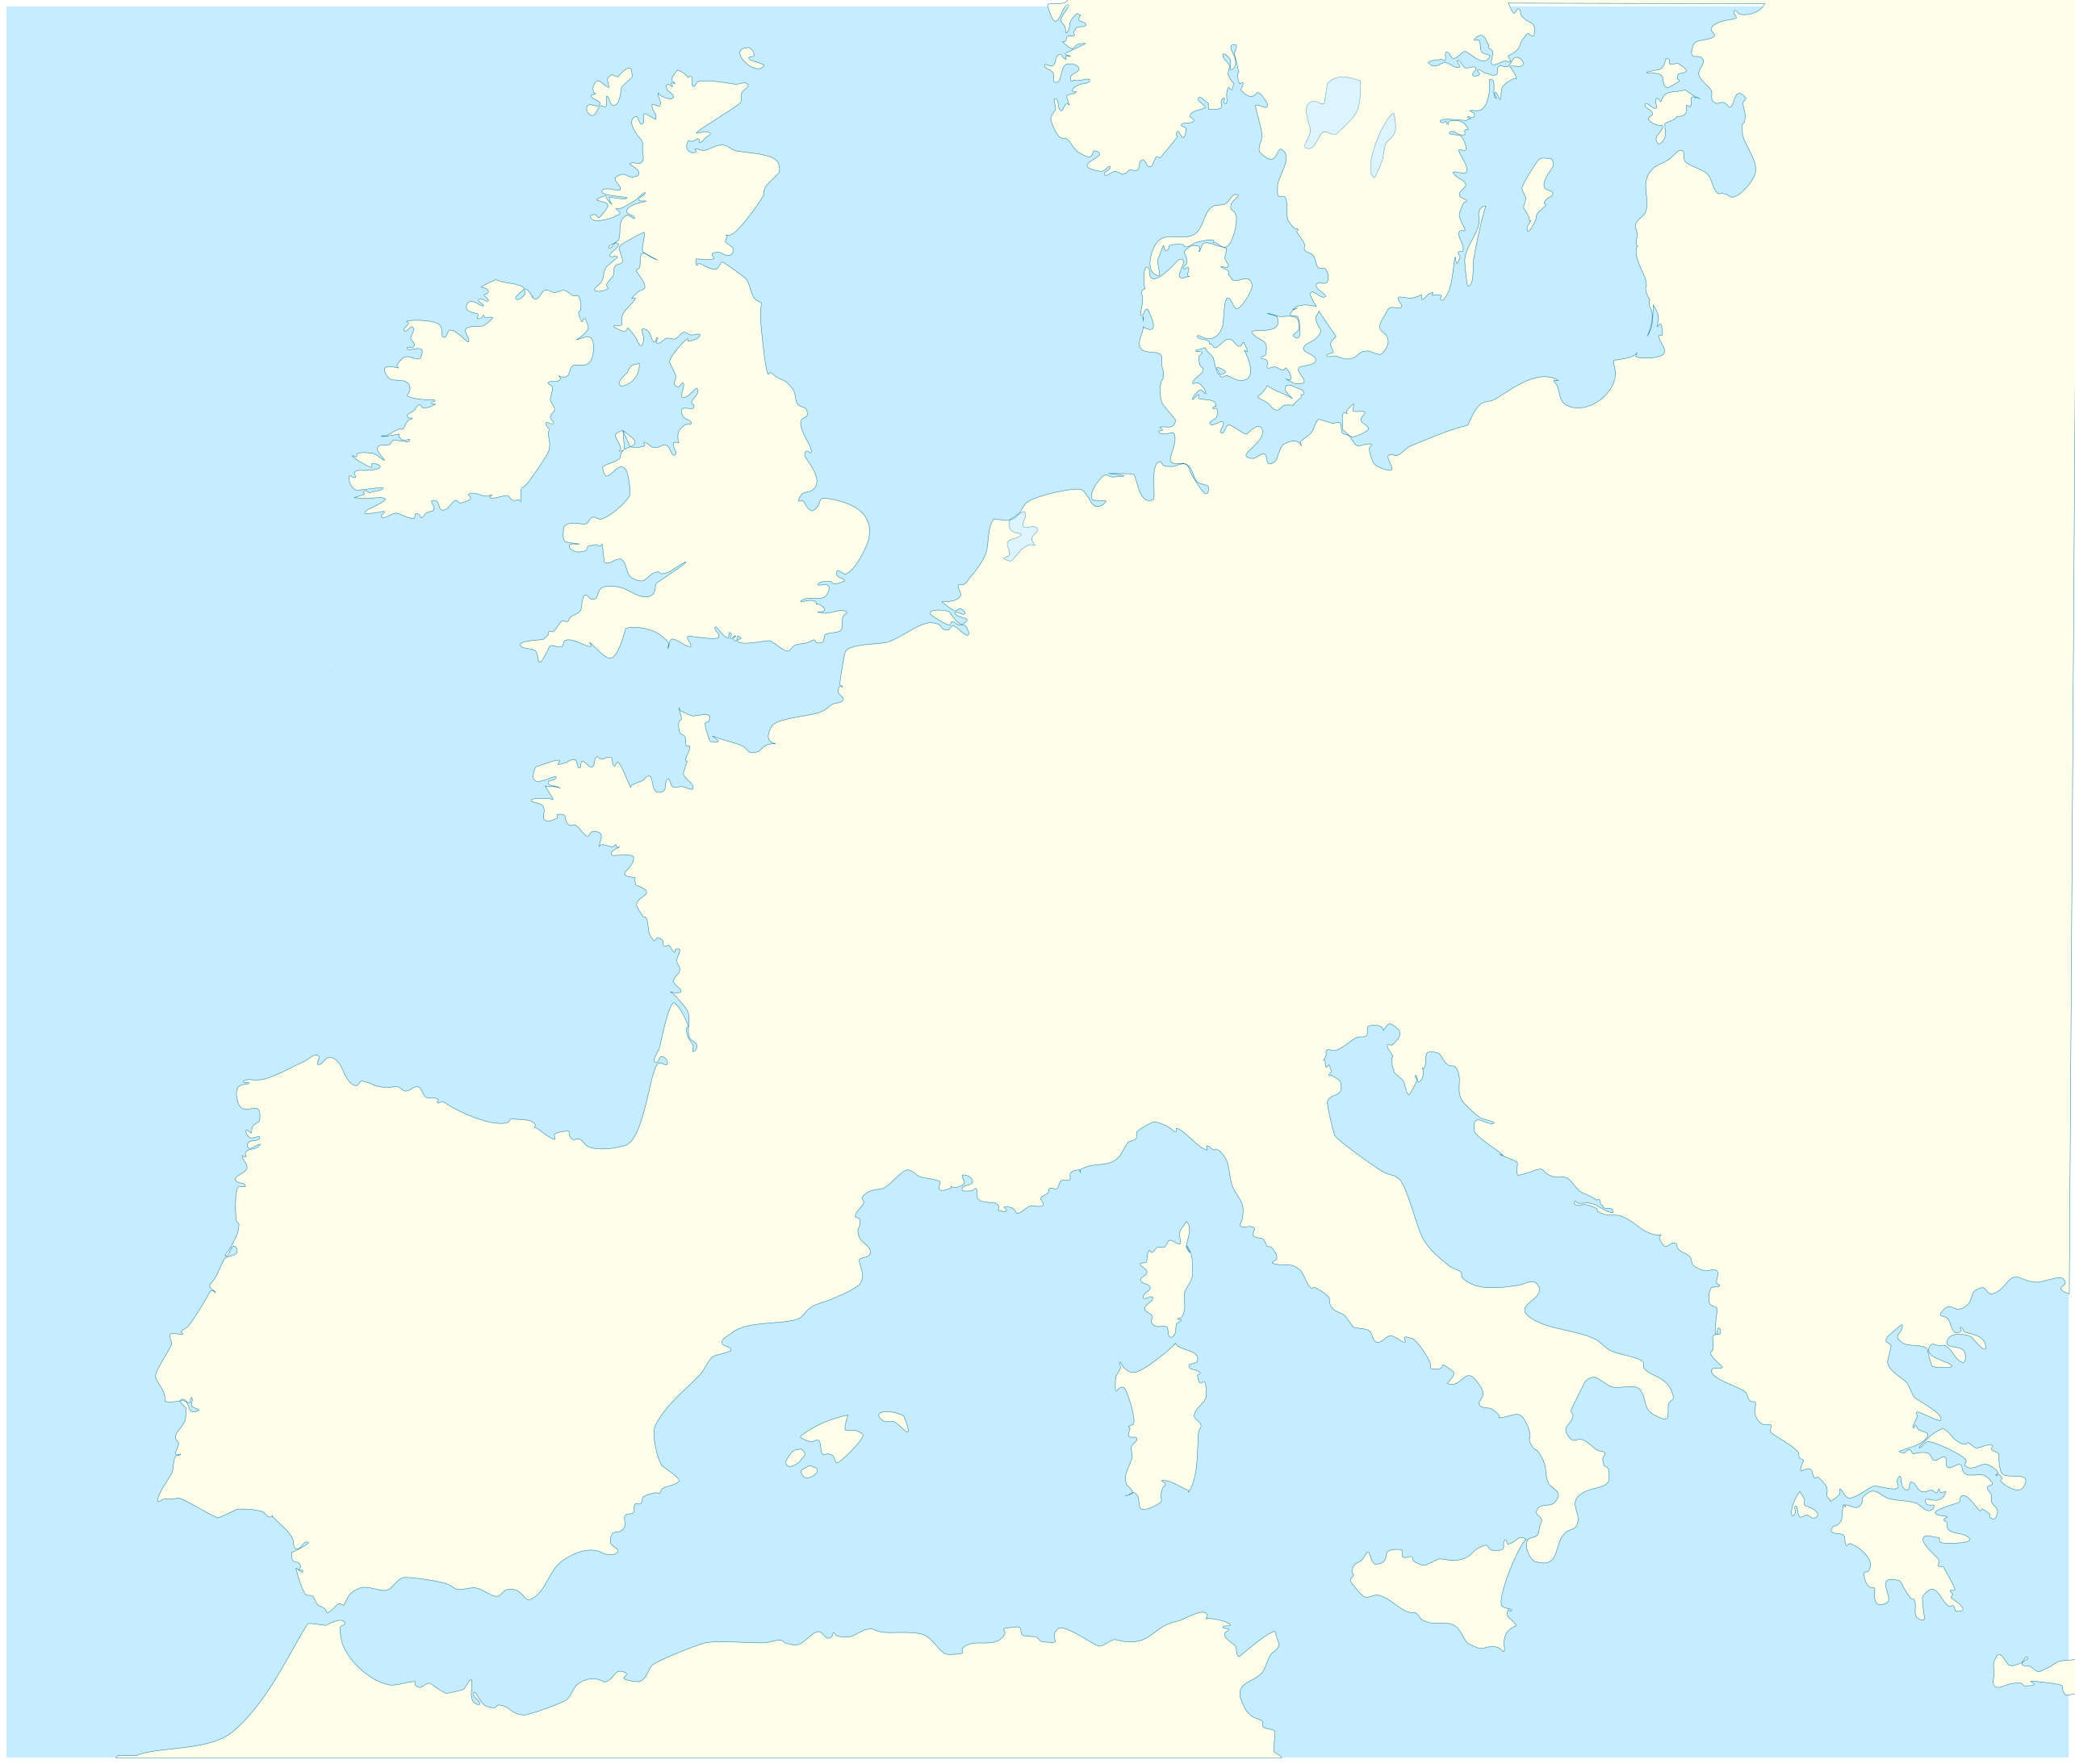 File:blank Map Western Europe Without Borders Atelier tout Ateliers Graphiques Ps